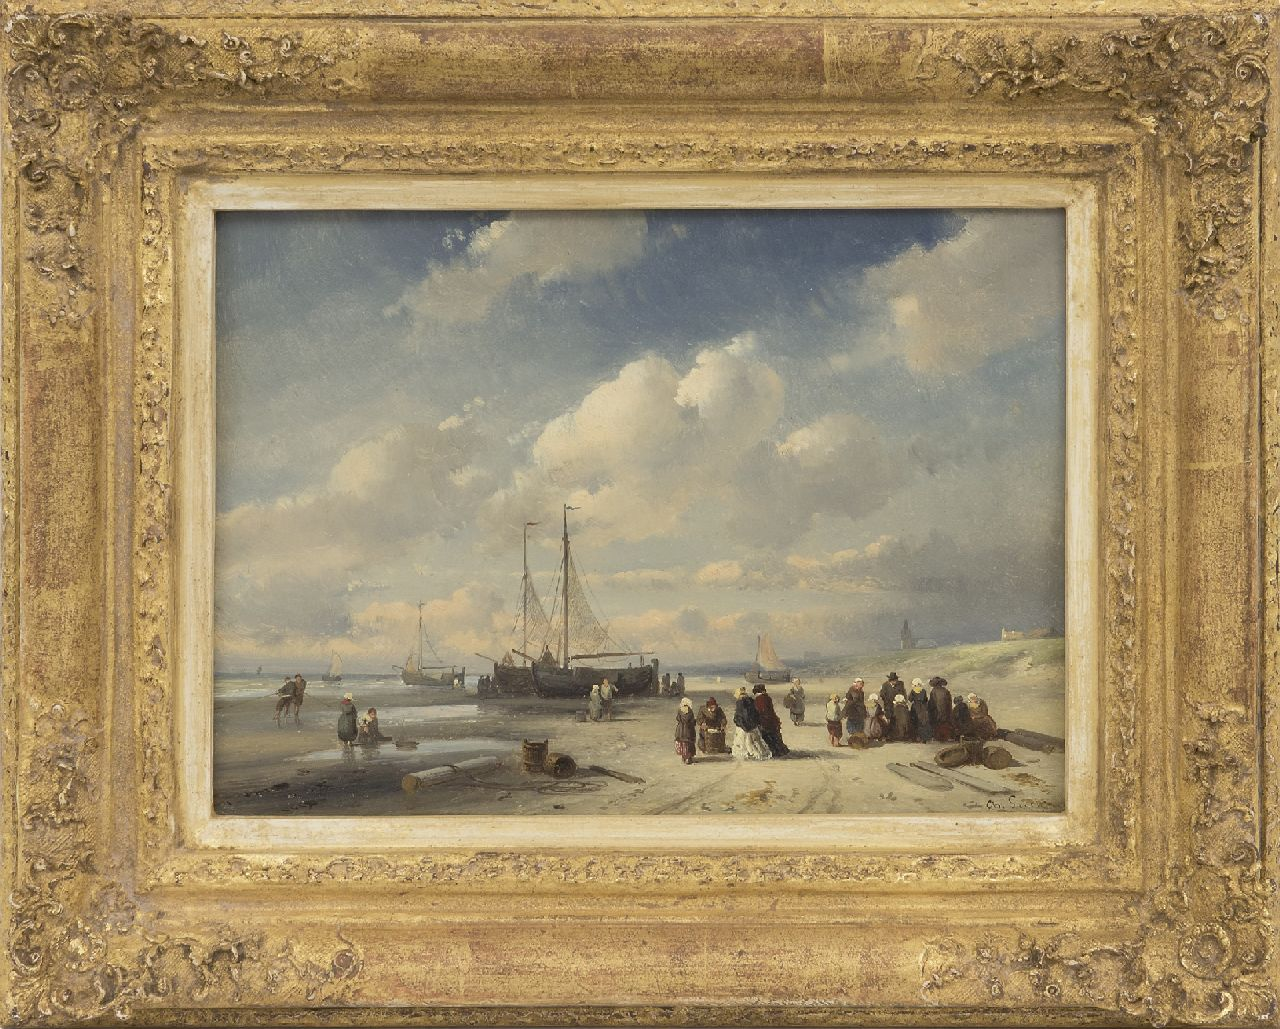 Leickert C.H.J.  | 'Charles' Henri Joseph Leickert | Paintings offered for sale | Fish market on the beach of Scheveningen, oil on panel 19.2 x 27.0 cm, signed l.r. and painted late 1850s